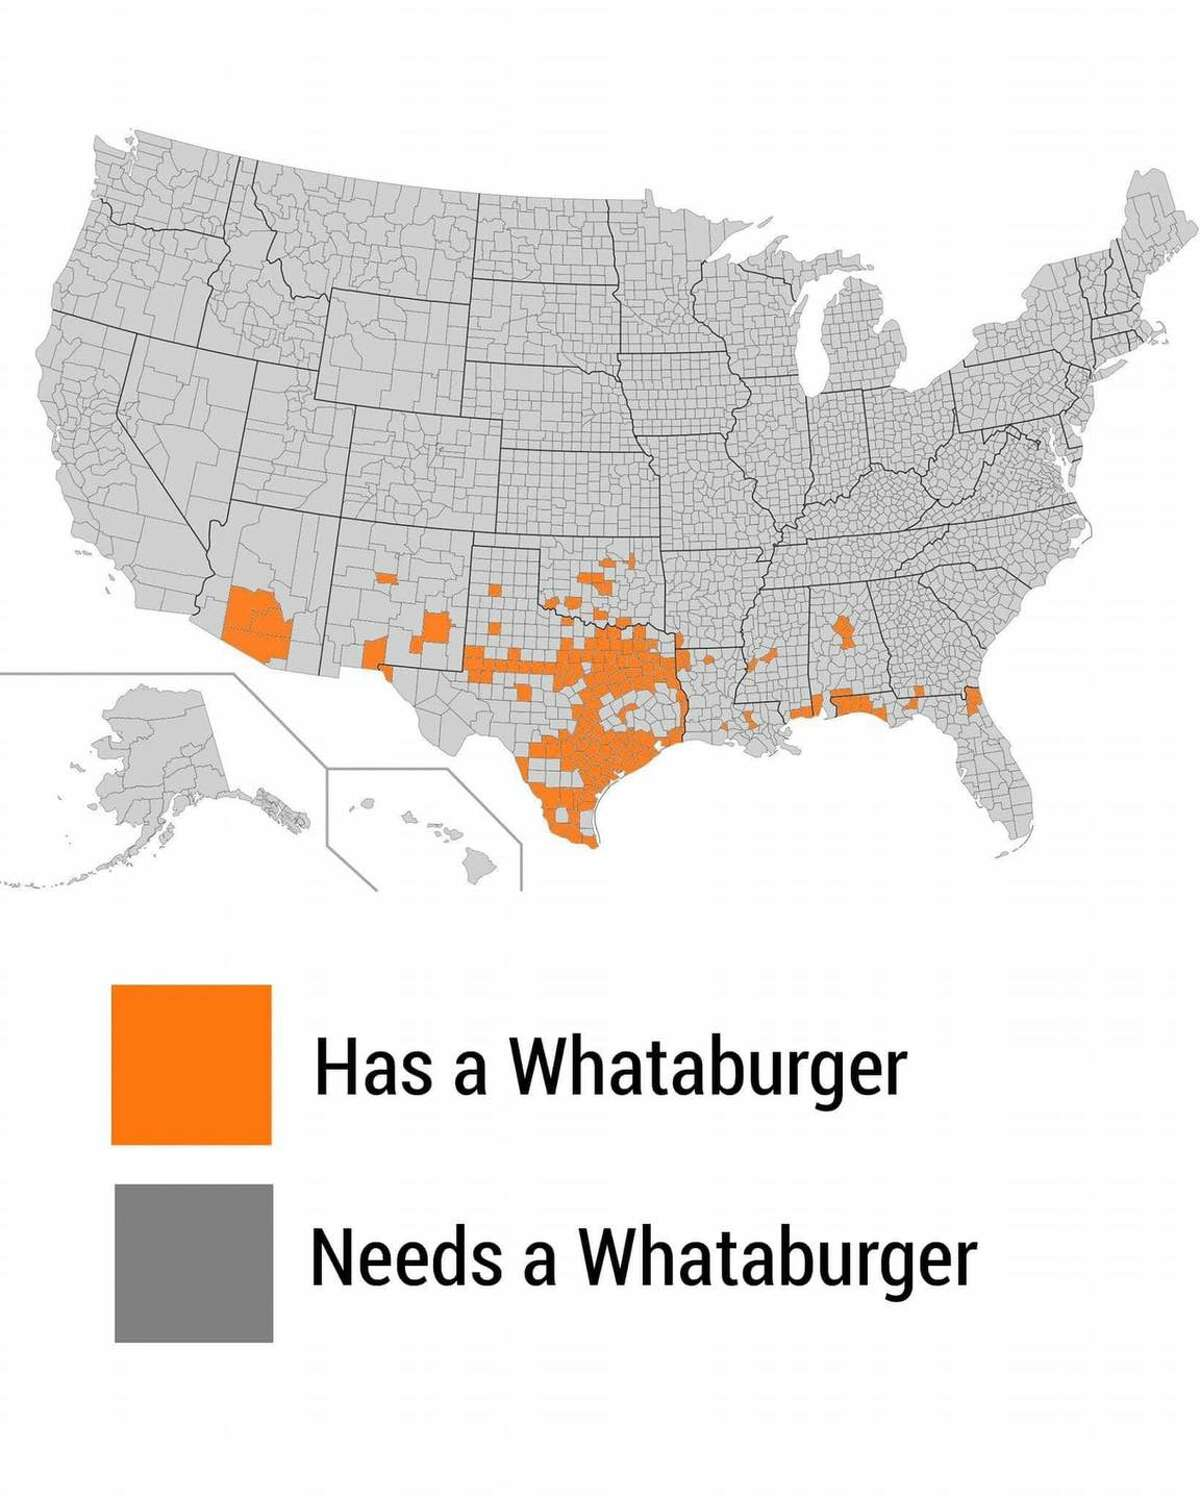 One Texas police department decided to share a map that